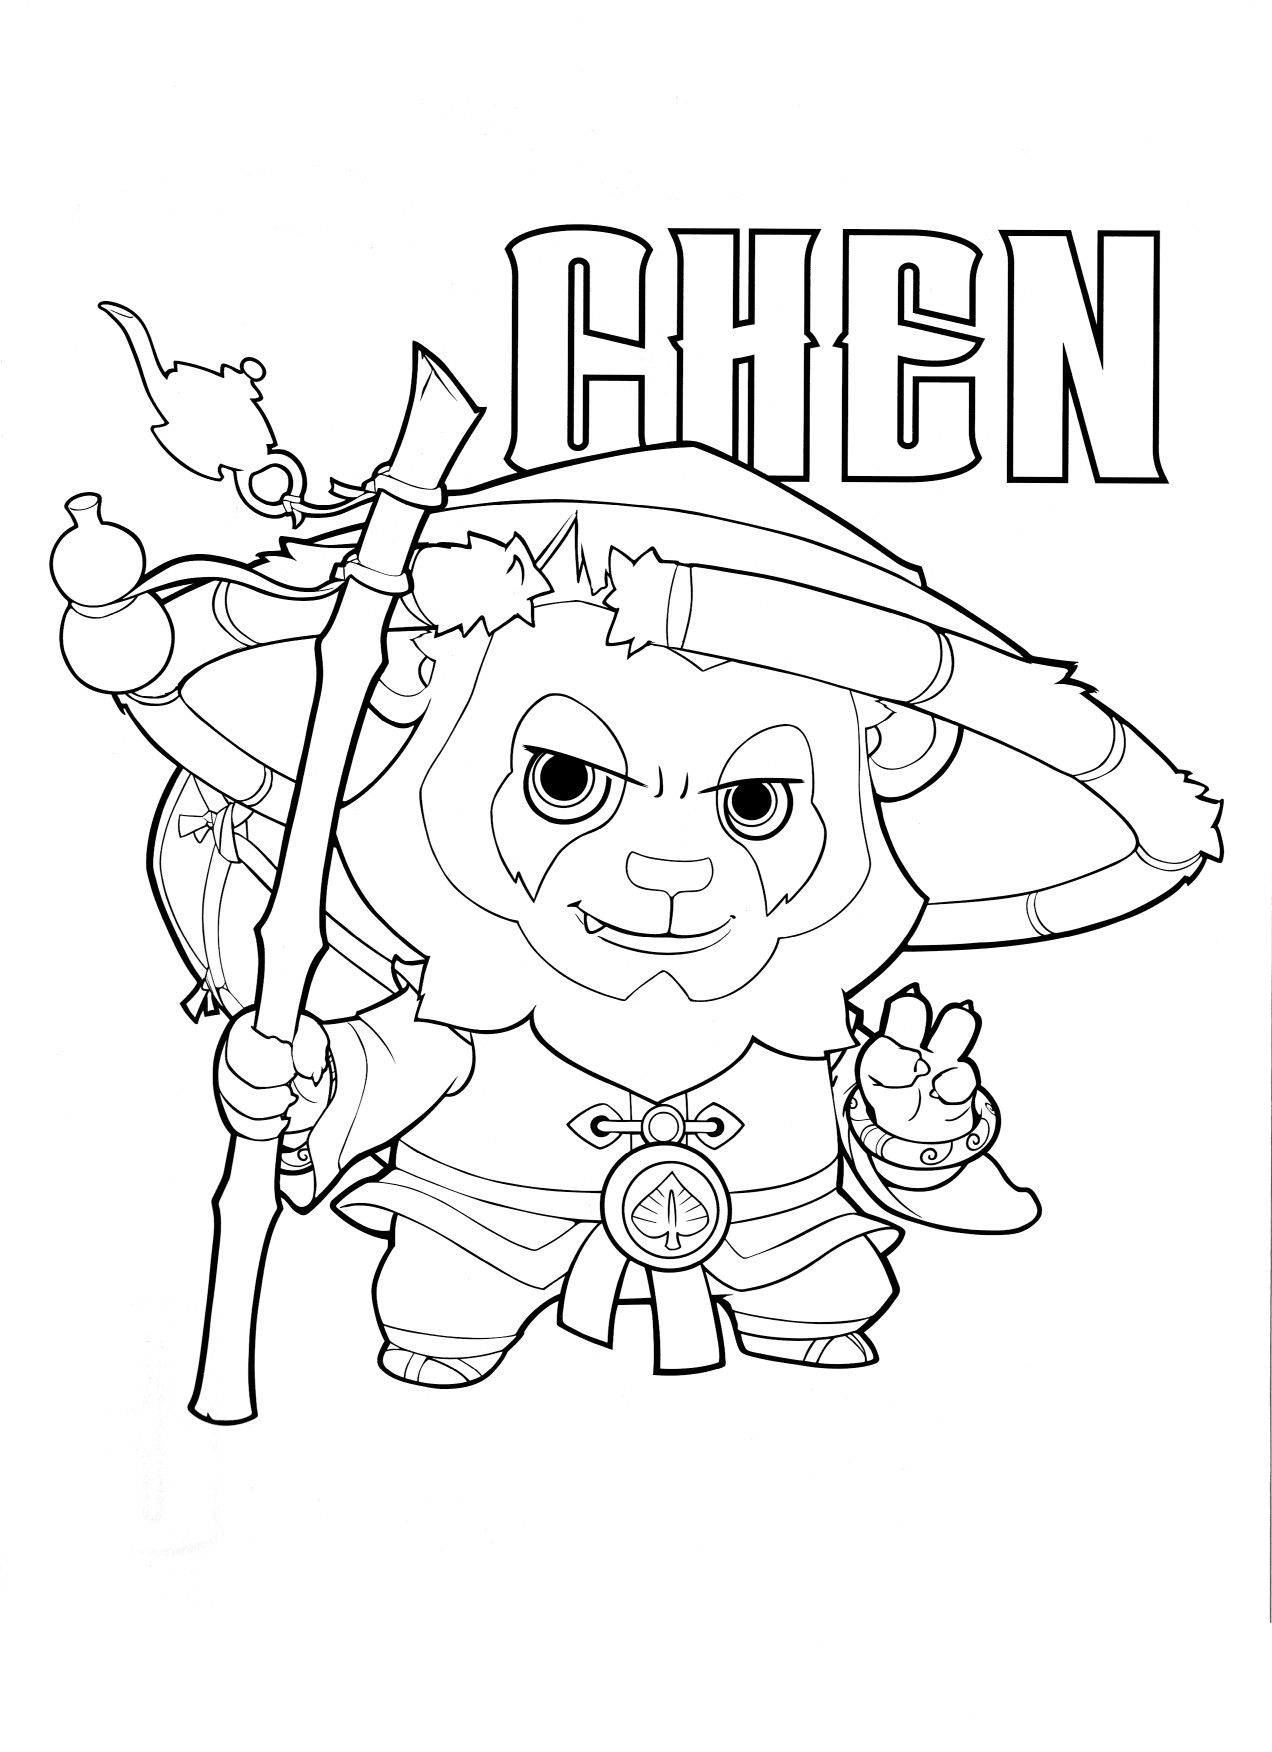 Pin By Csaba Pal On Kleurplaten Coloring Books Coloring Pages Coloring Book Album